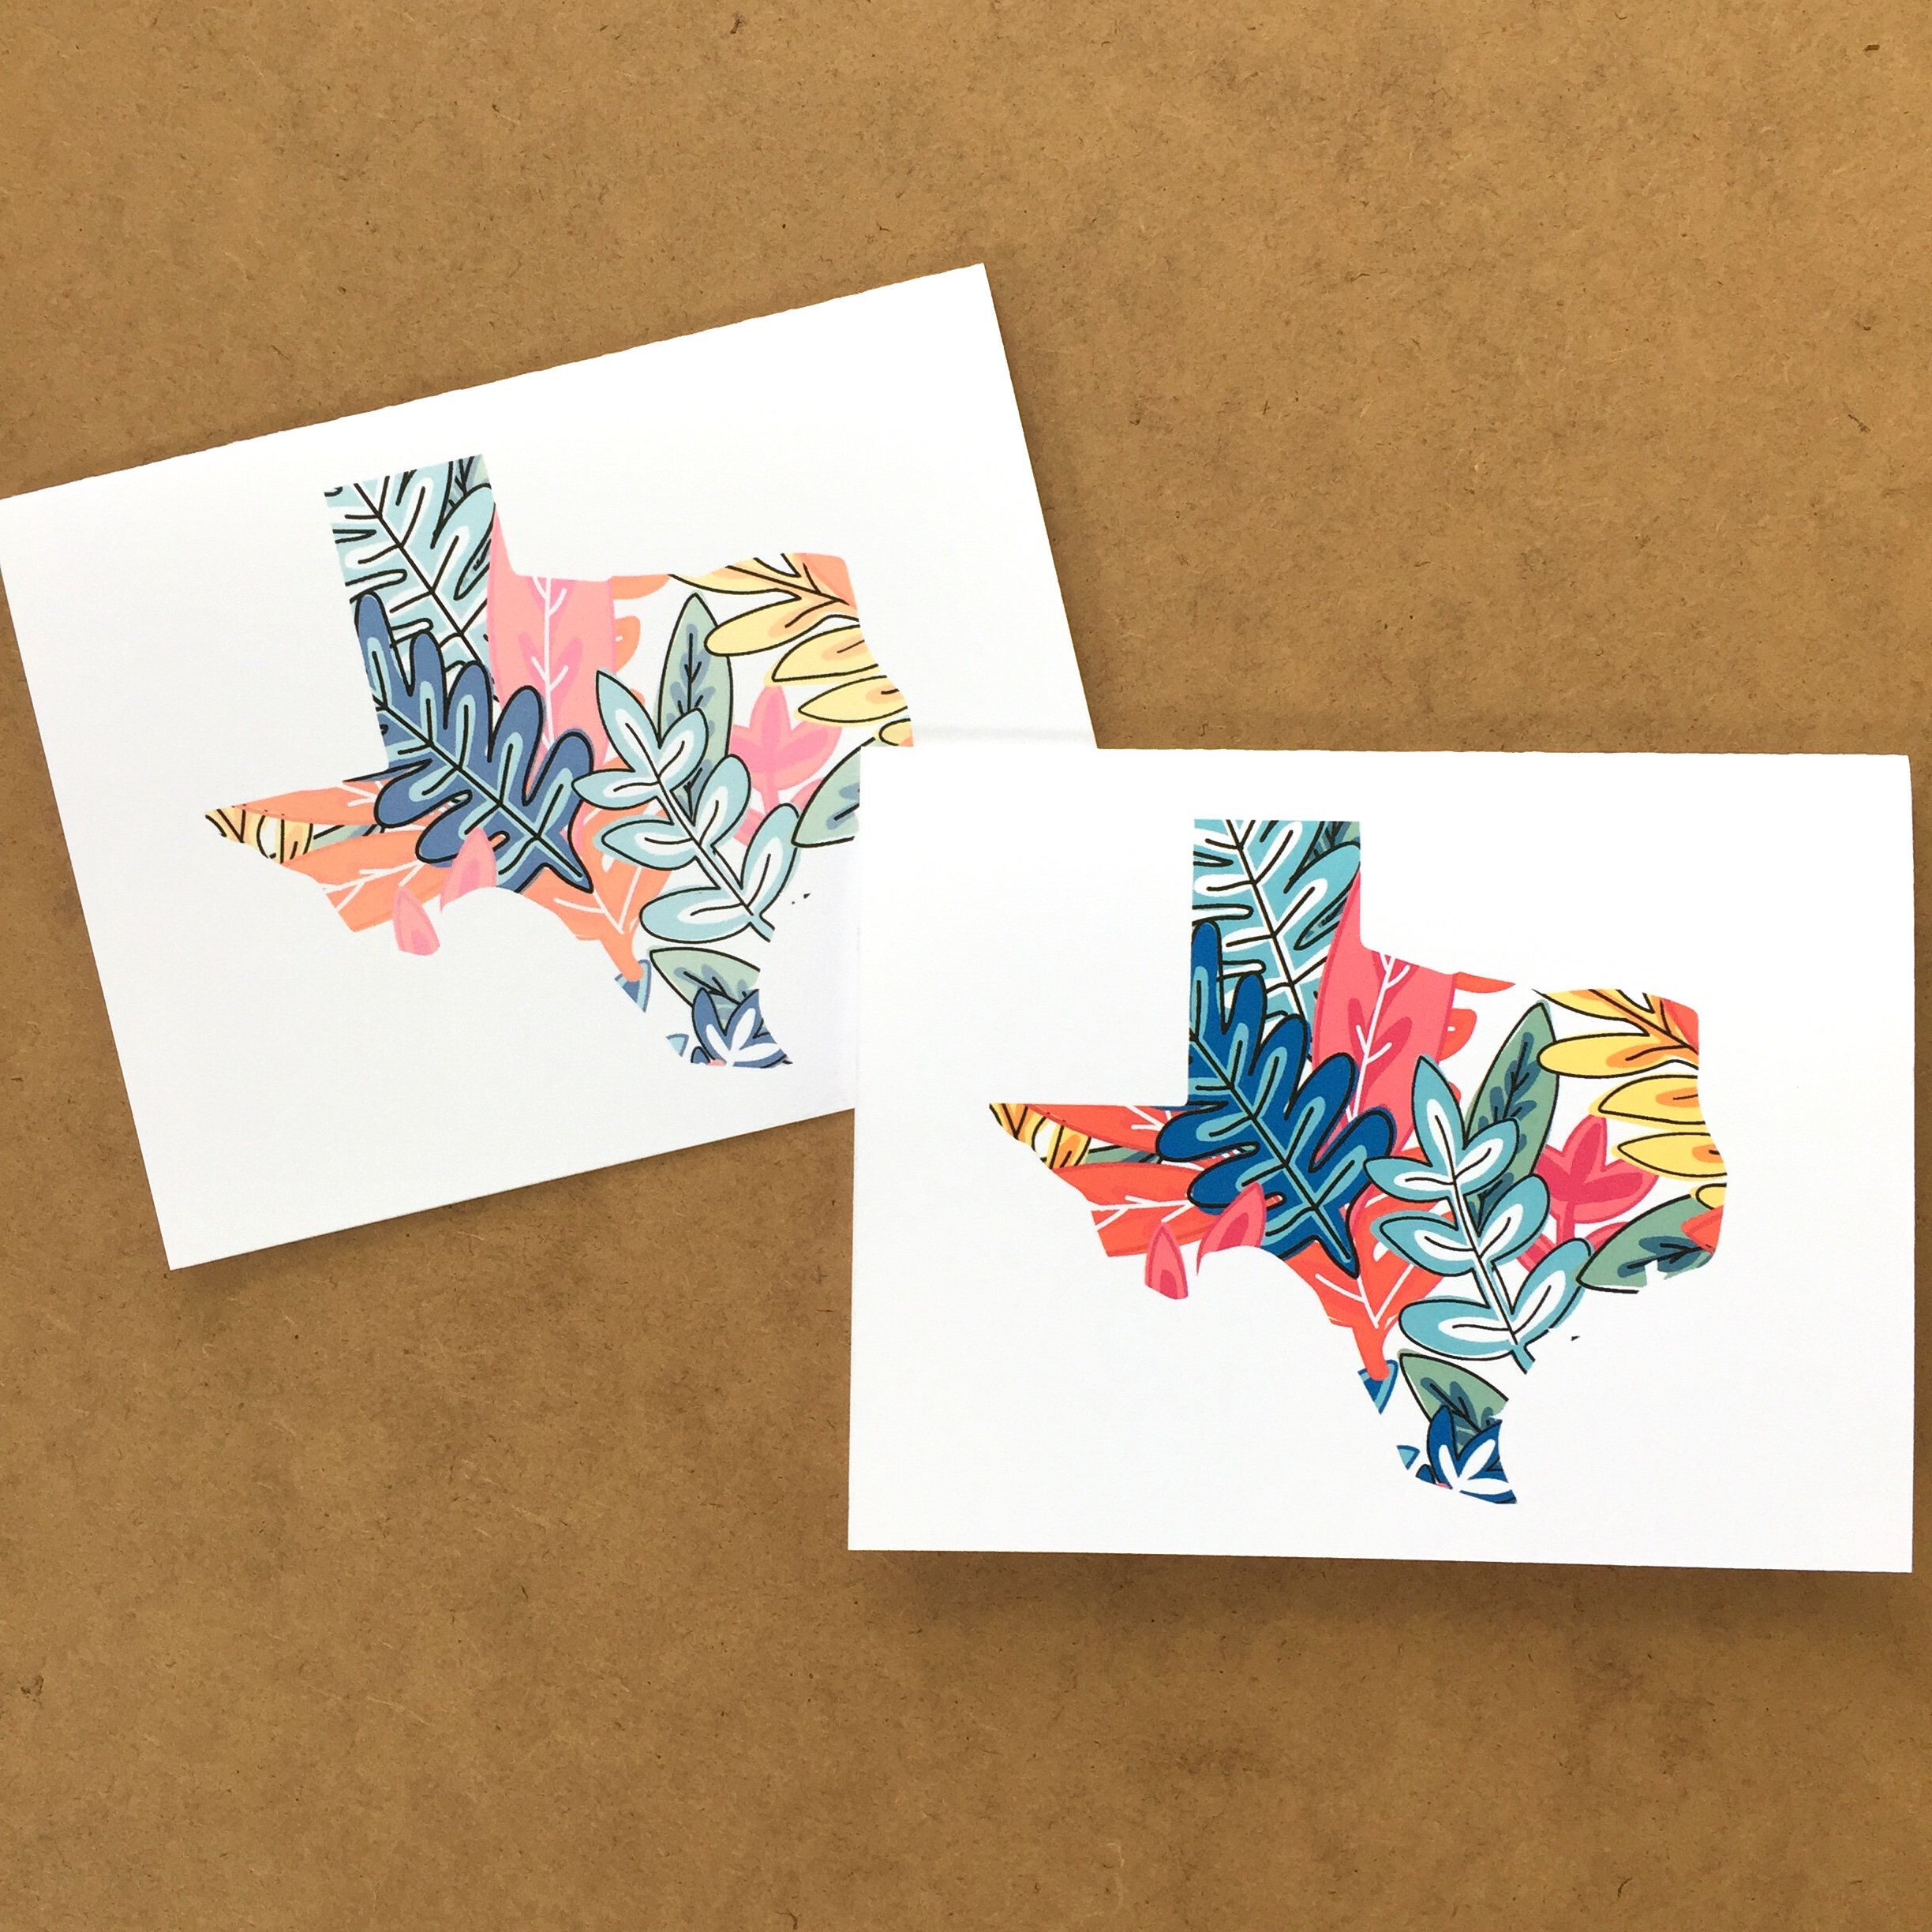 Texas note card with botanical print texas map texas state gift texas note card with botanical print texas map texas state gift greetings from texas texas greeting card texas gift ideas texas made m4hsunfo